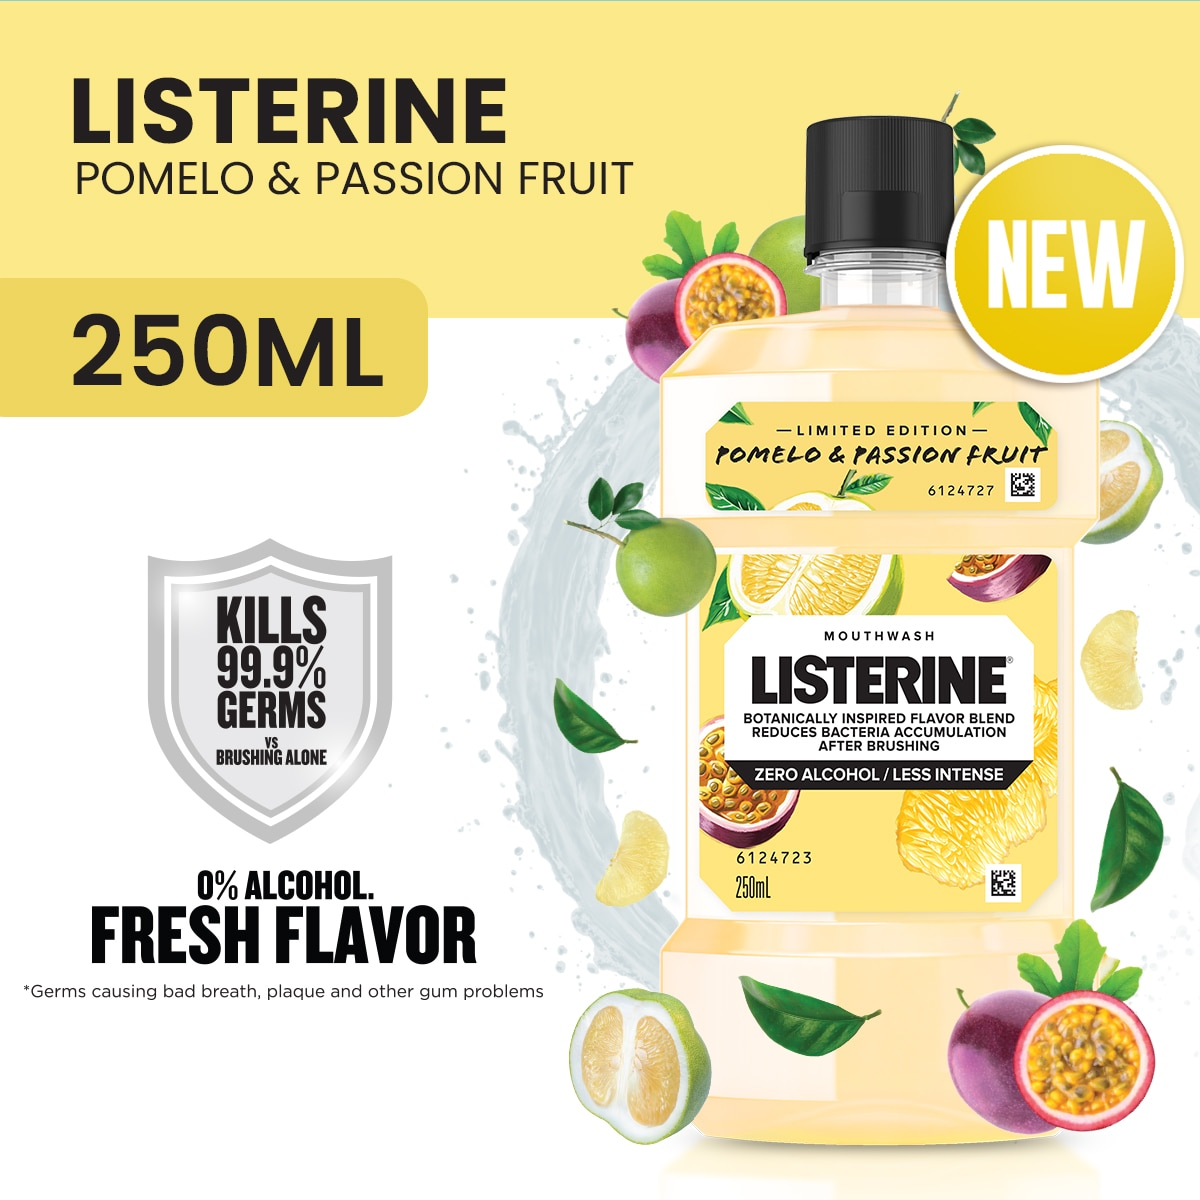 LISTERINELISTERINE POMELO & PASSIONFRUIT 250ML,Mouthwash and Oral AntisepticsGet 10% disc when you purchased minimum P500 worth of Health and Beauty products using COLLECT10